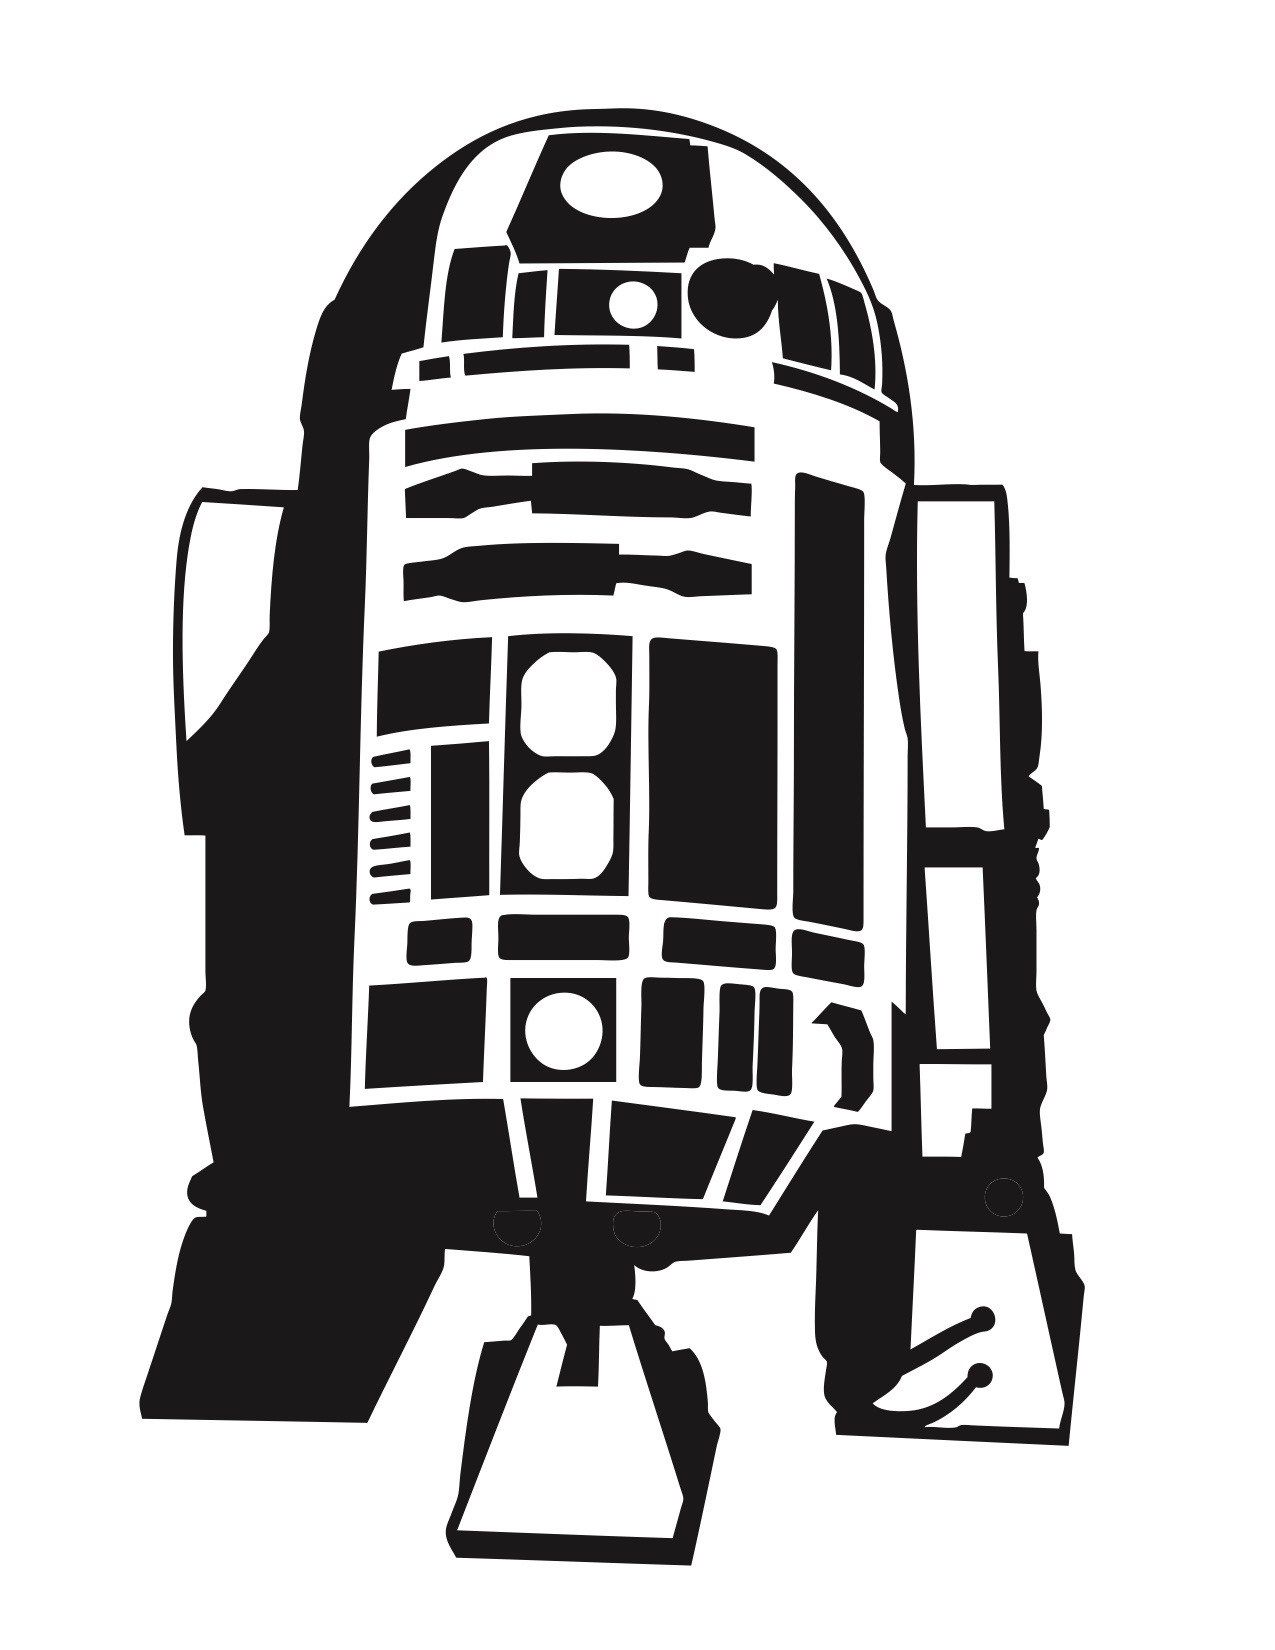 R2d2 Silhouette Vector At Getdrawings